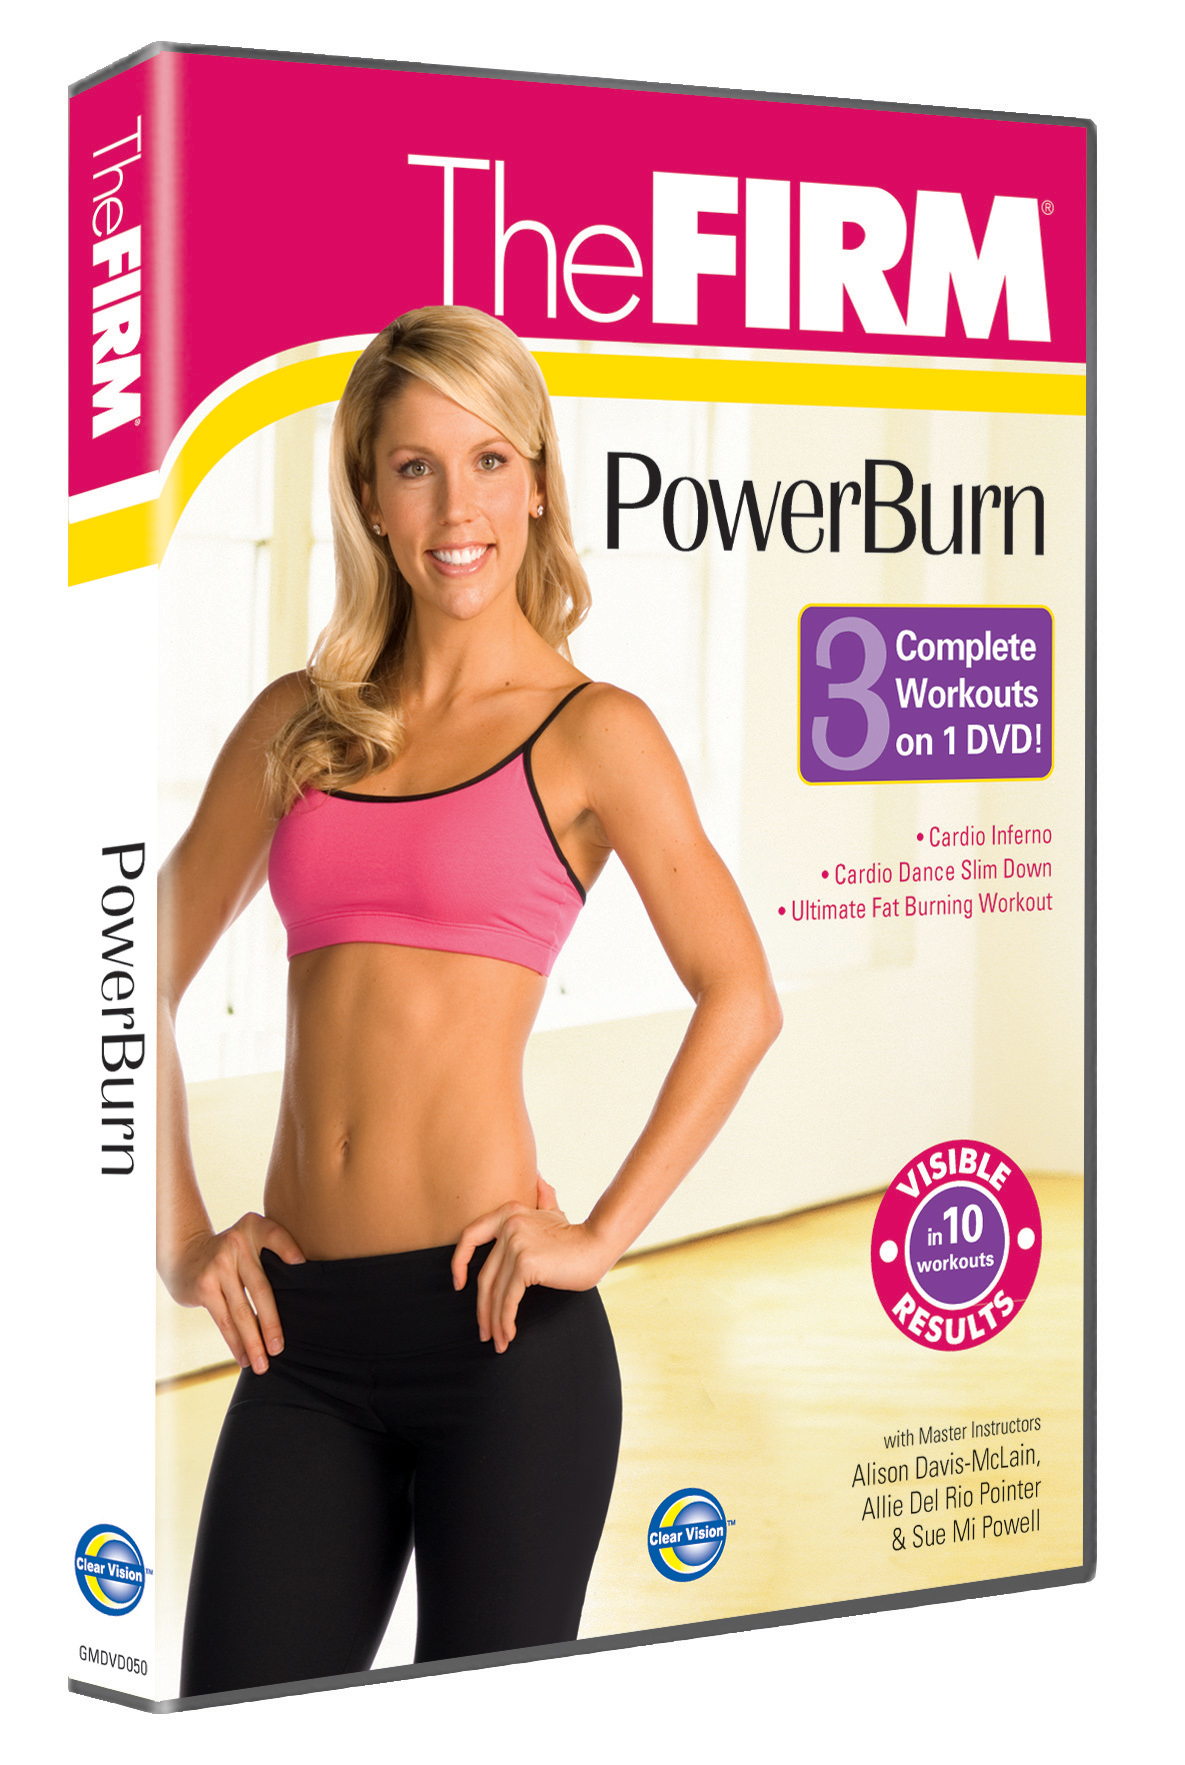 Clearvision fitness DVDs – winners